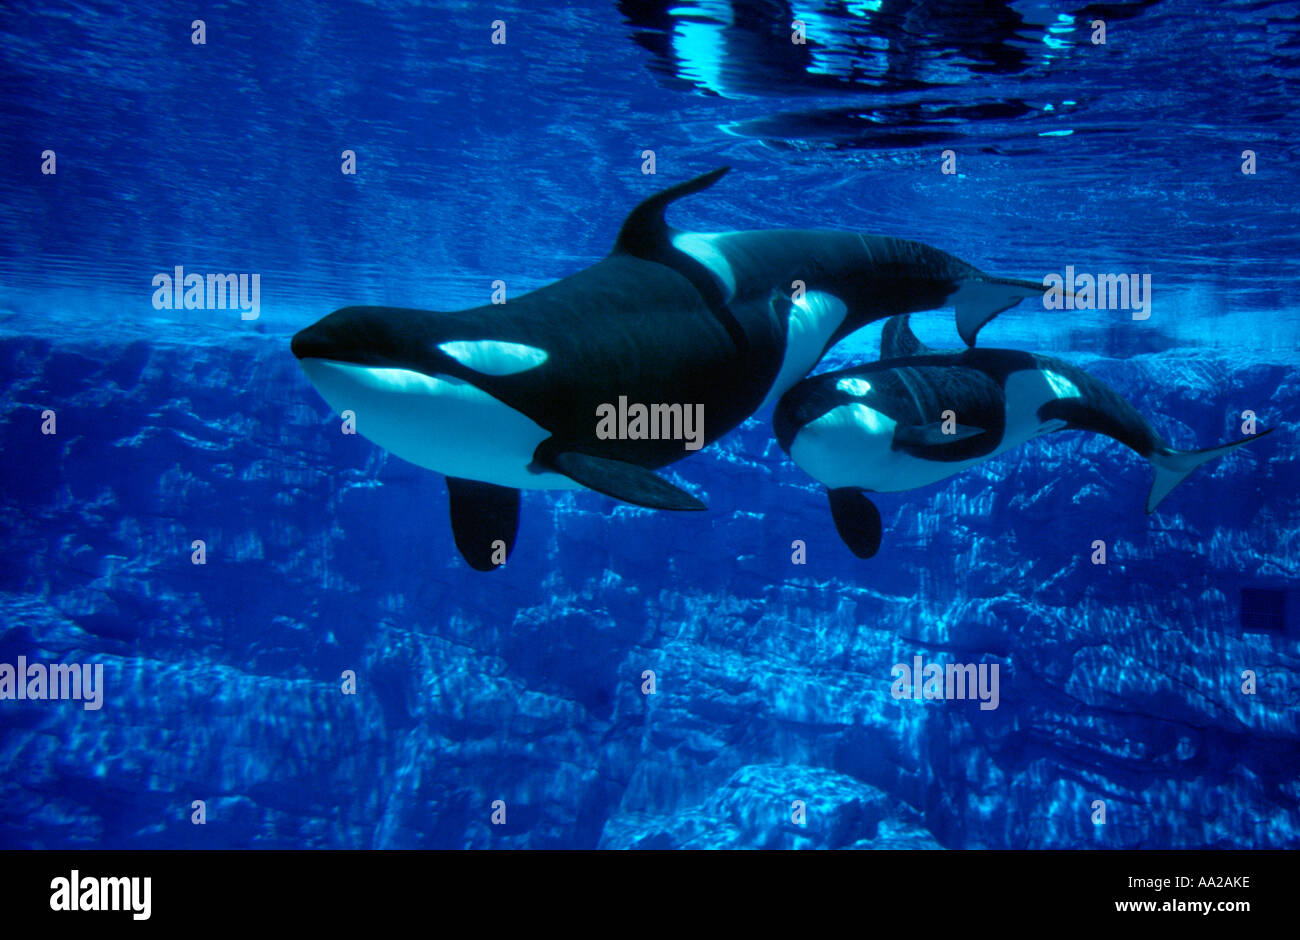 MF 441 Orca Whales, Orcinus orca, mother and calf in aquarium. Photo Copyright Brandon Cole - Stock Image